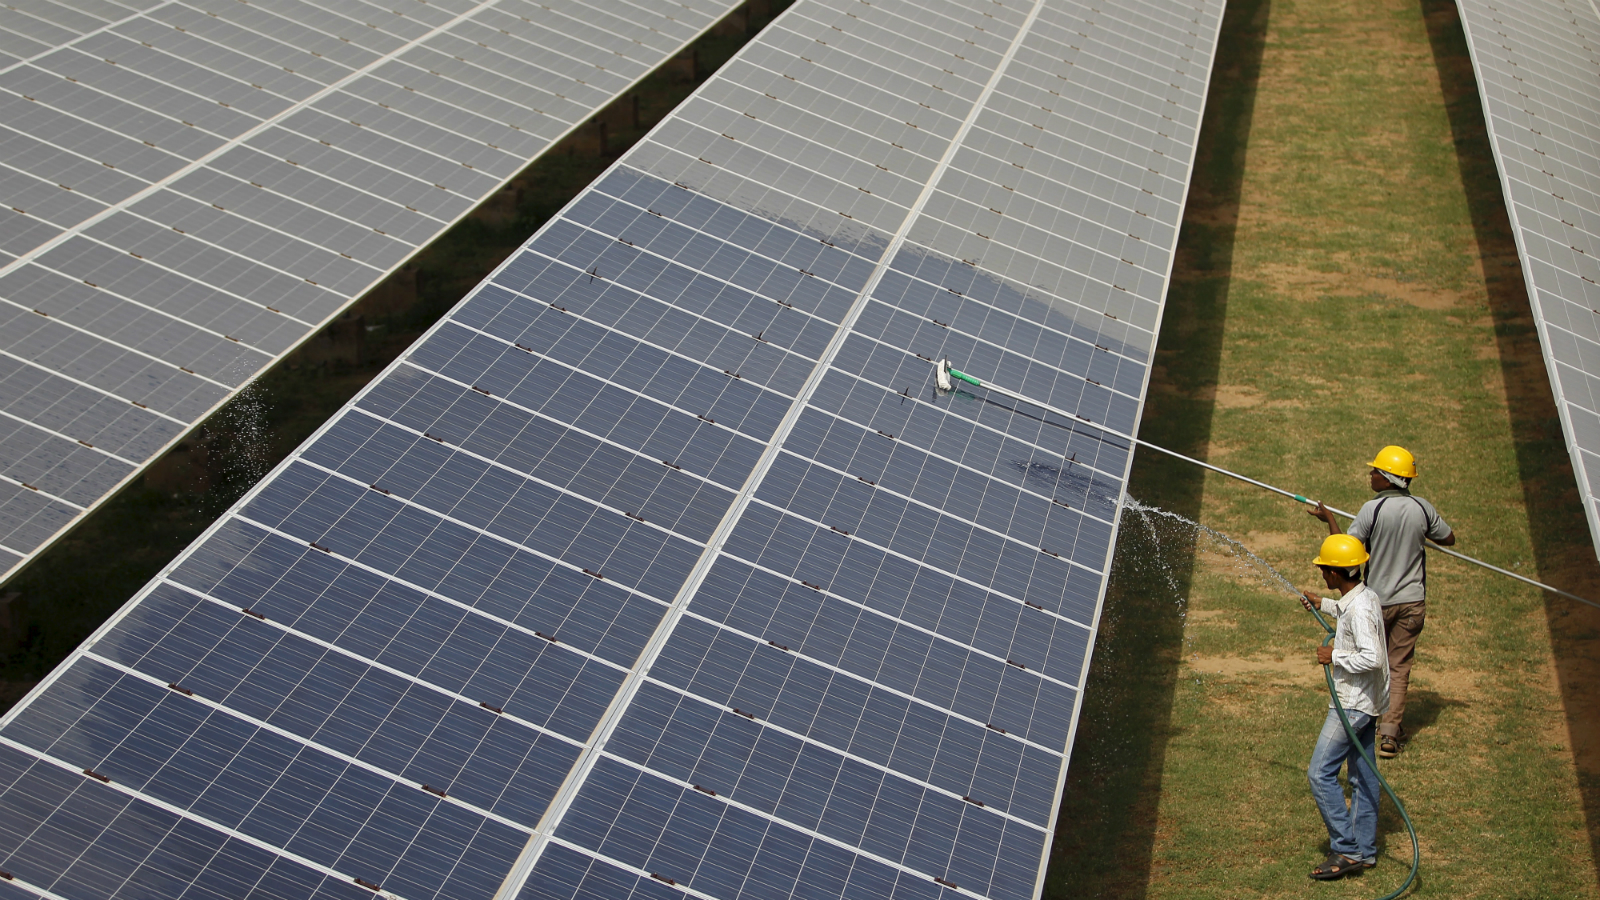 """Workers clean photovoltaic panels inside a solar power plant in Gujarat, India, in this July 2, 2015 file photo. The likely collapse of SunEdison Inc's solar project in India, the first of 32 planned """"ultra mega"""" complexes, could delay Prime Minister Narendra Modi's goal to increase renewable energy fivefold by several years and probably cost consumers more."""